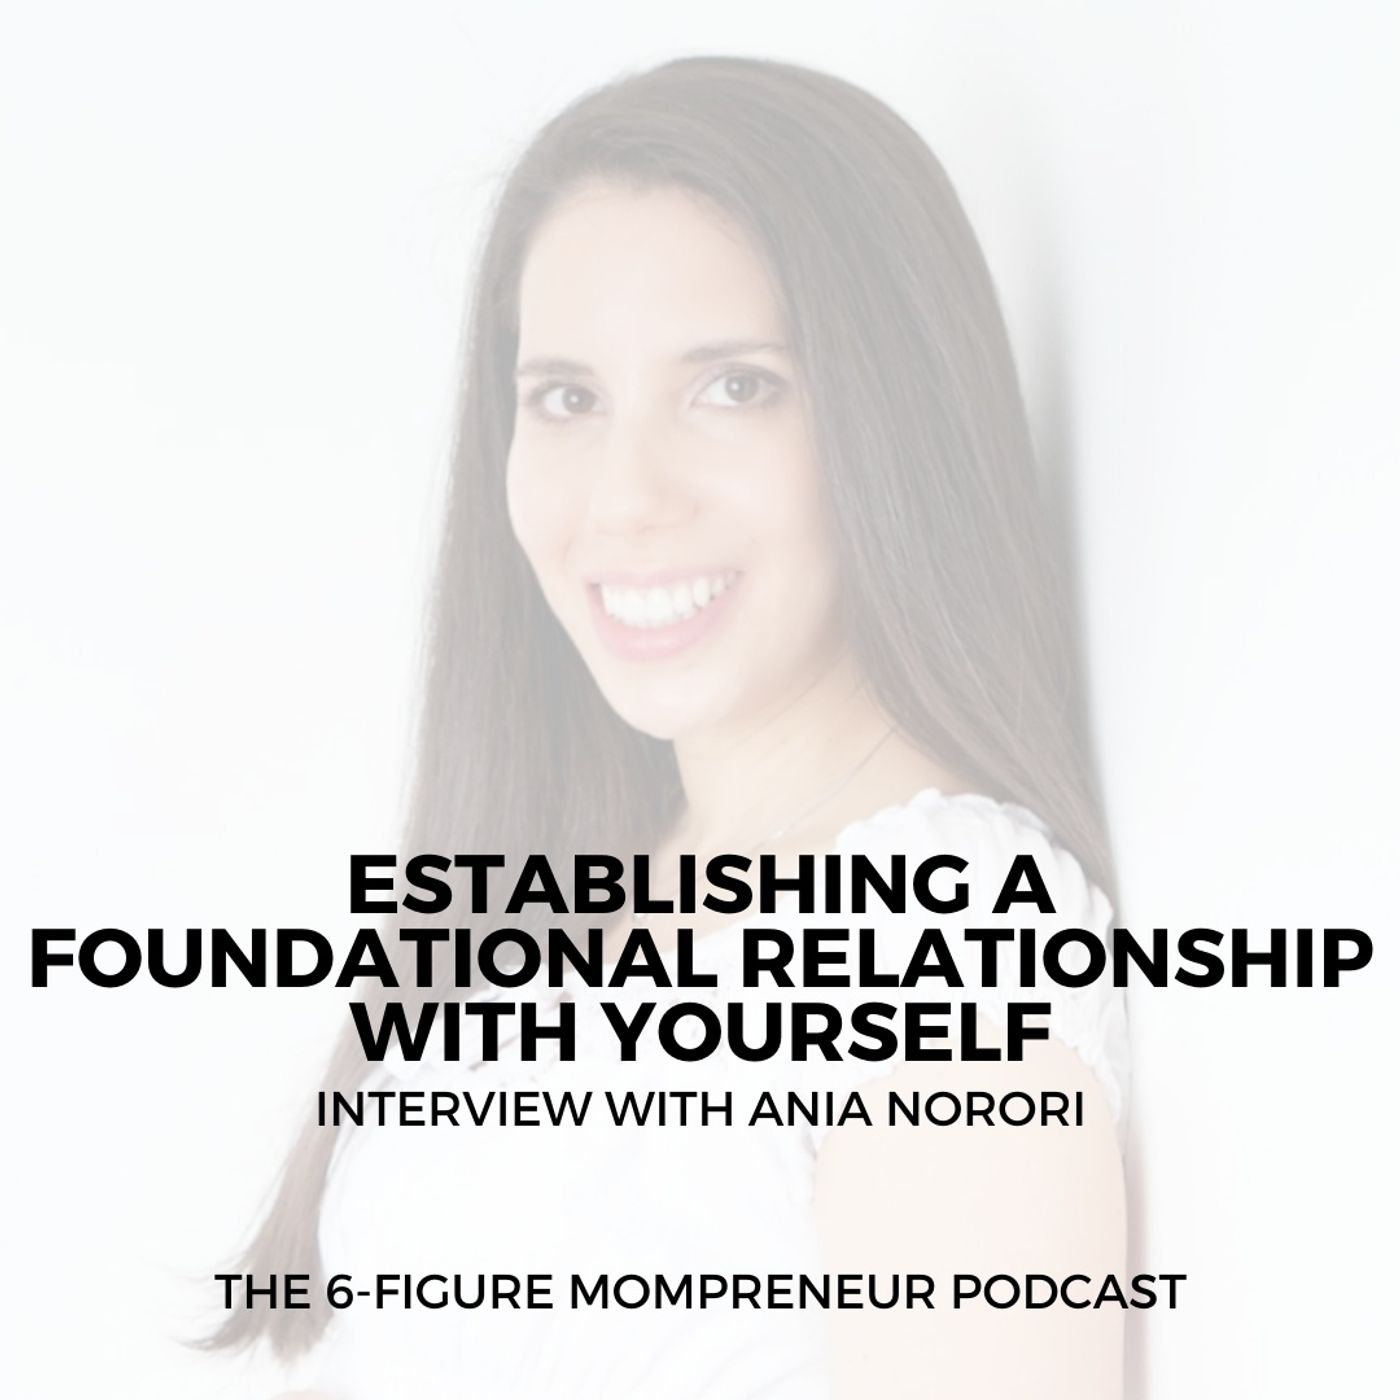 Establishing a foundational relationship with yourself with Ania Norori